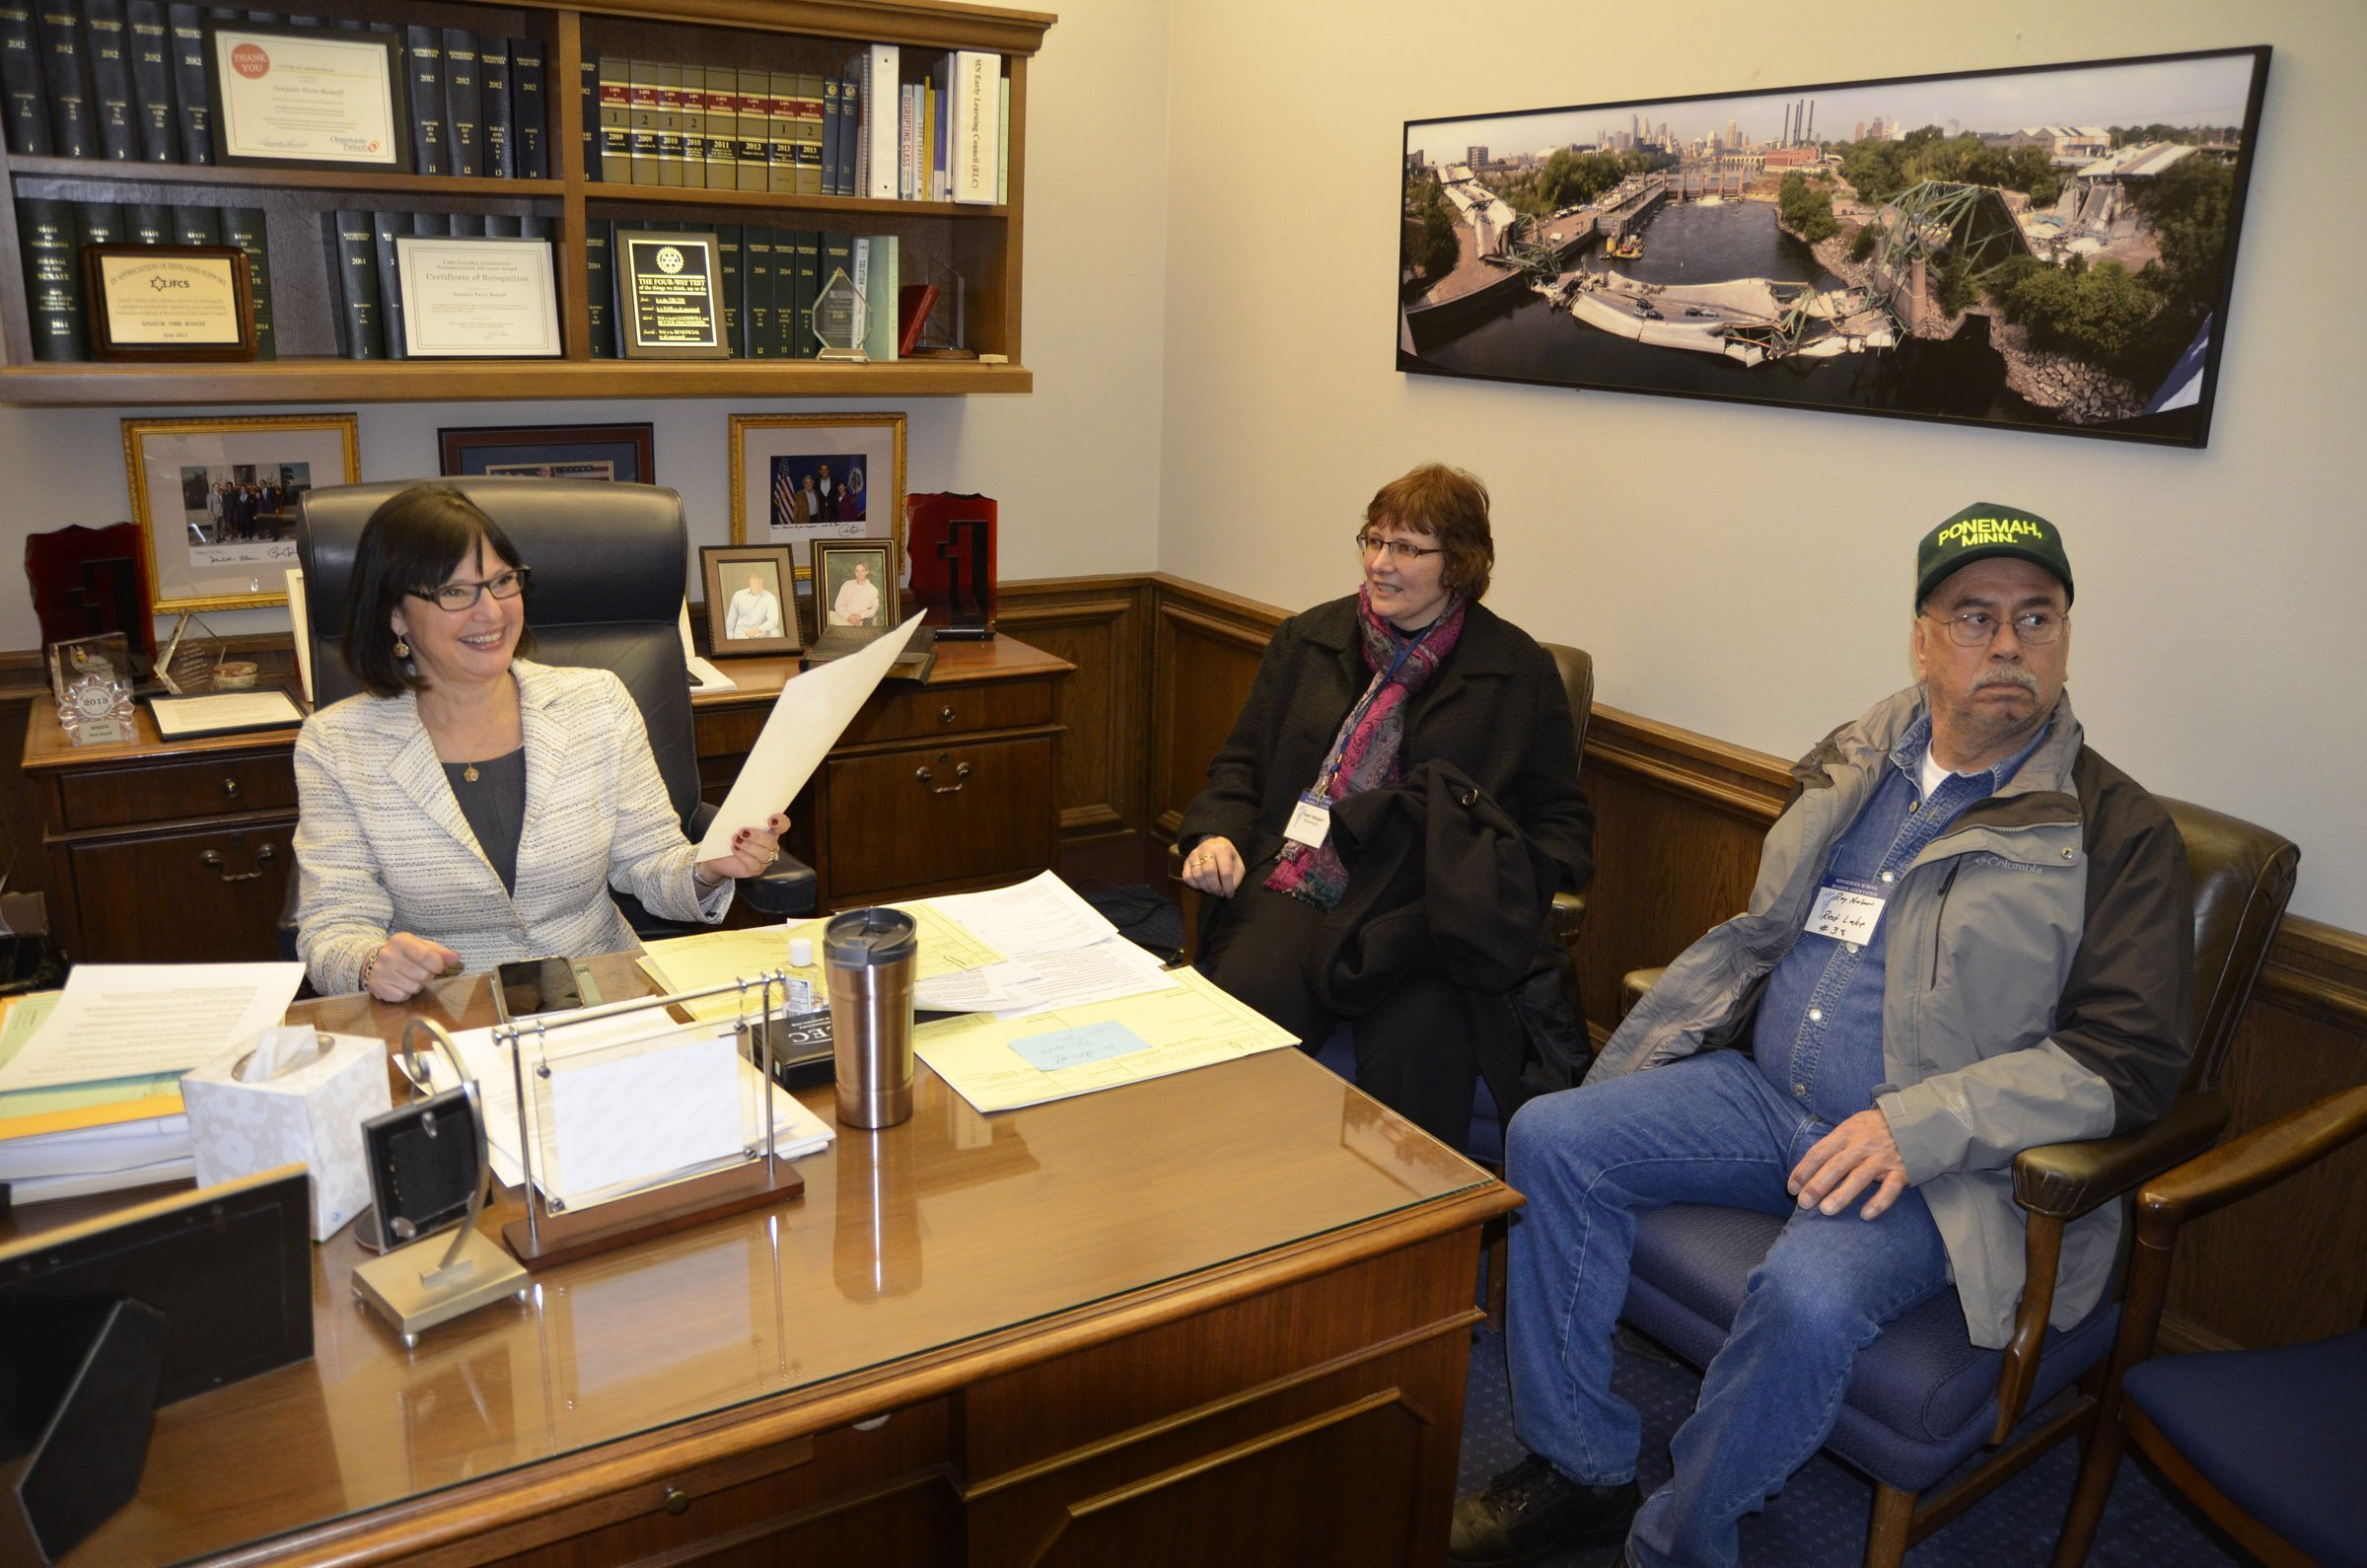 """School board members met with Sen. Terri Bonoff. Bonoff is the author of a bill (SF 97) that would end the """"last in, first out"""" (LIFO) approach to the teacher layoff process."""